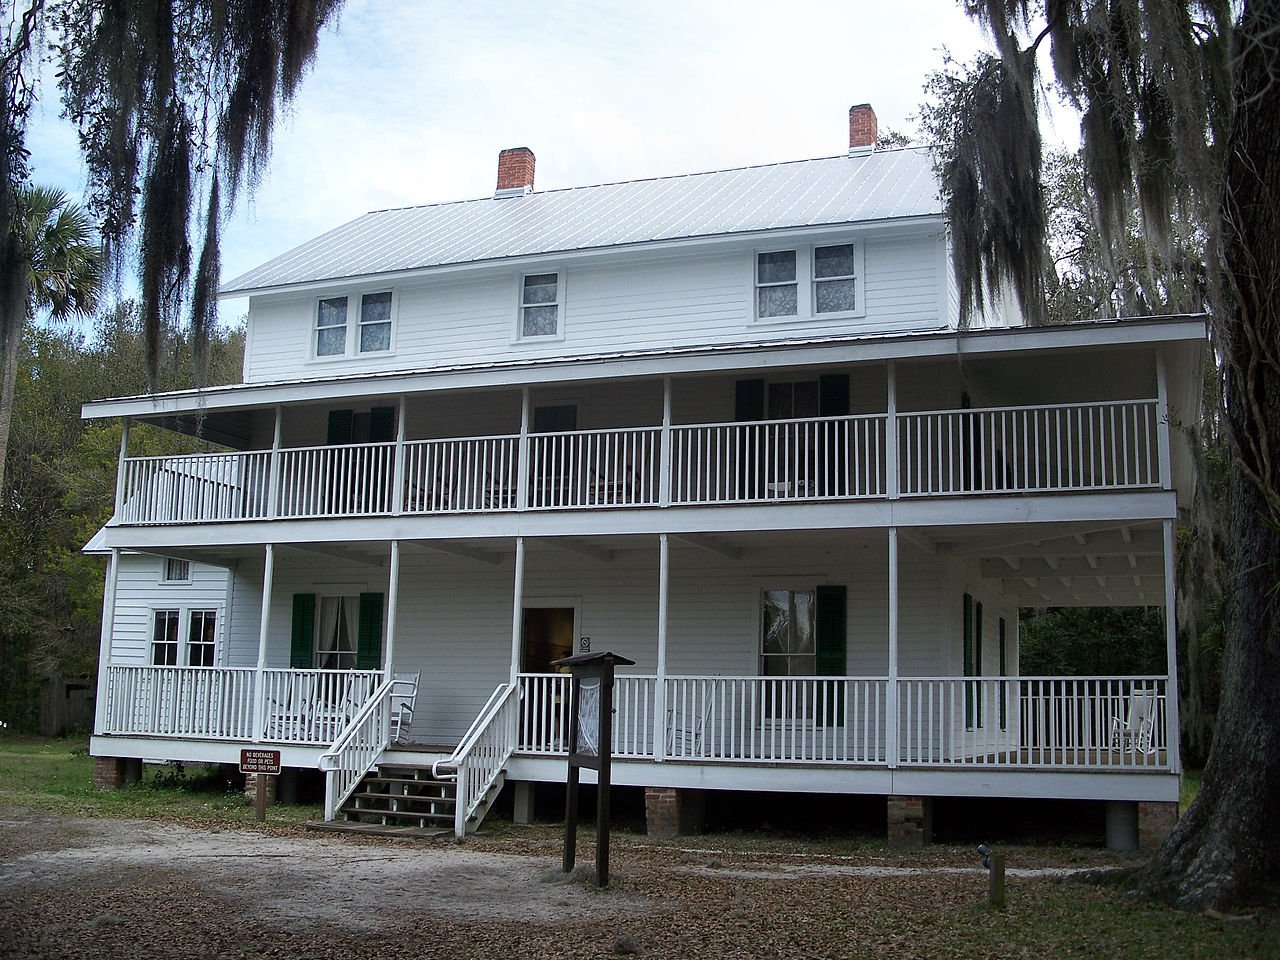 Built in 1872, the Thursby House is one of the oldest buildings in Orange City, FL.